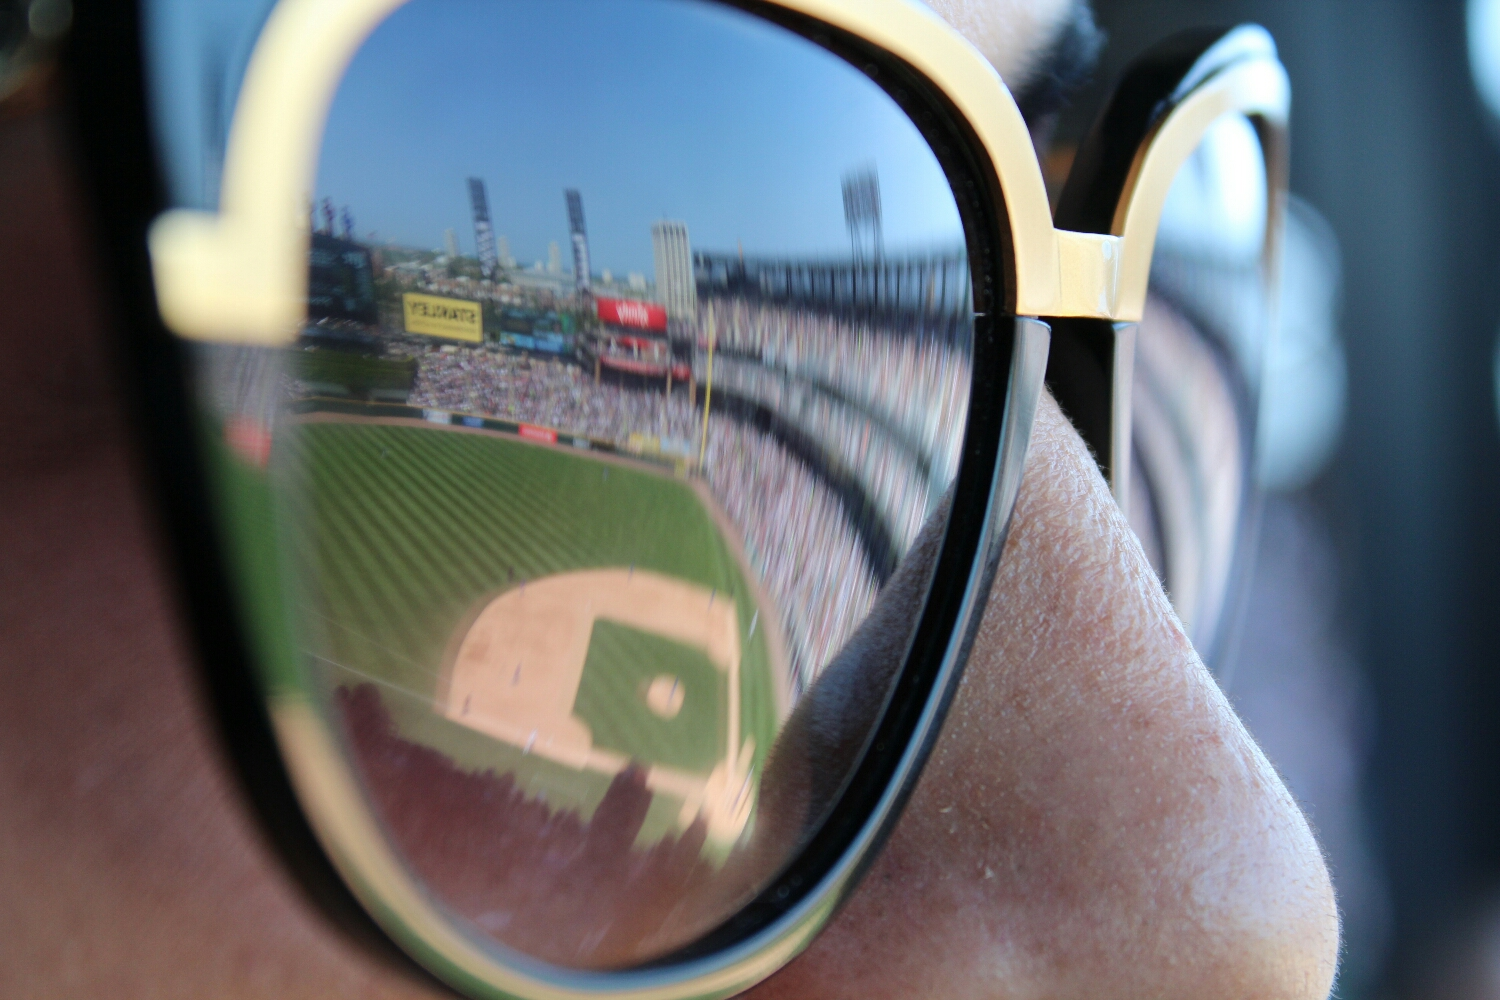 View of the Sox